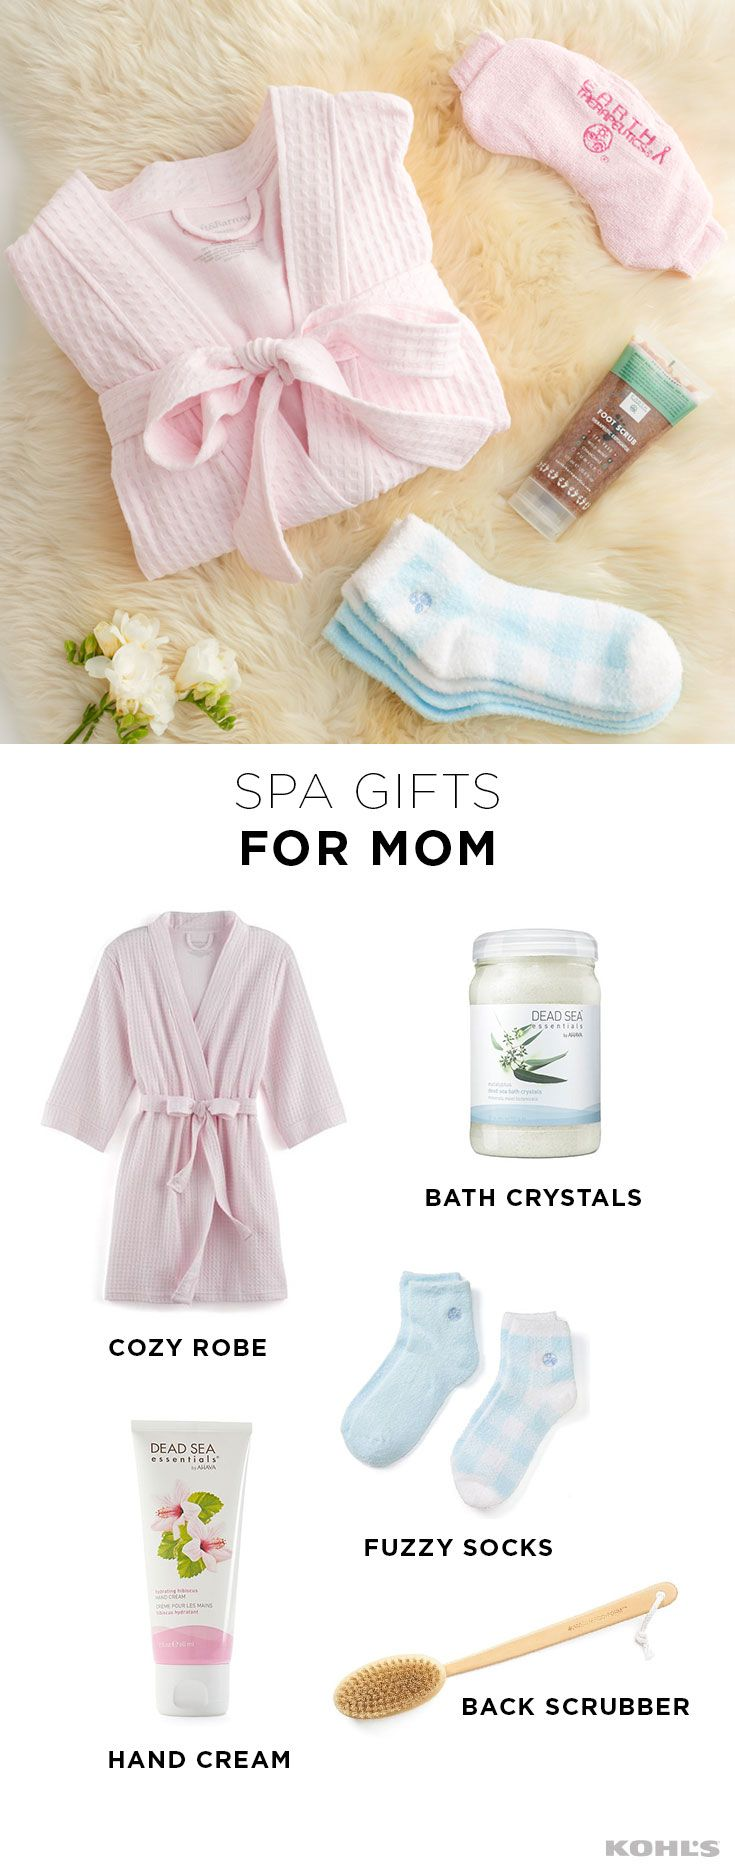 Momming can be tough, so give the gift of a soothing home spa ...